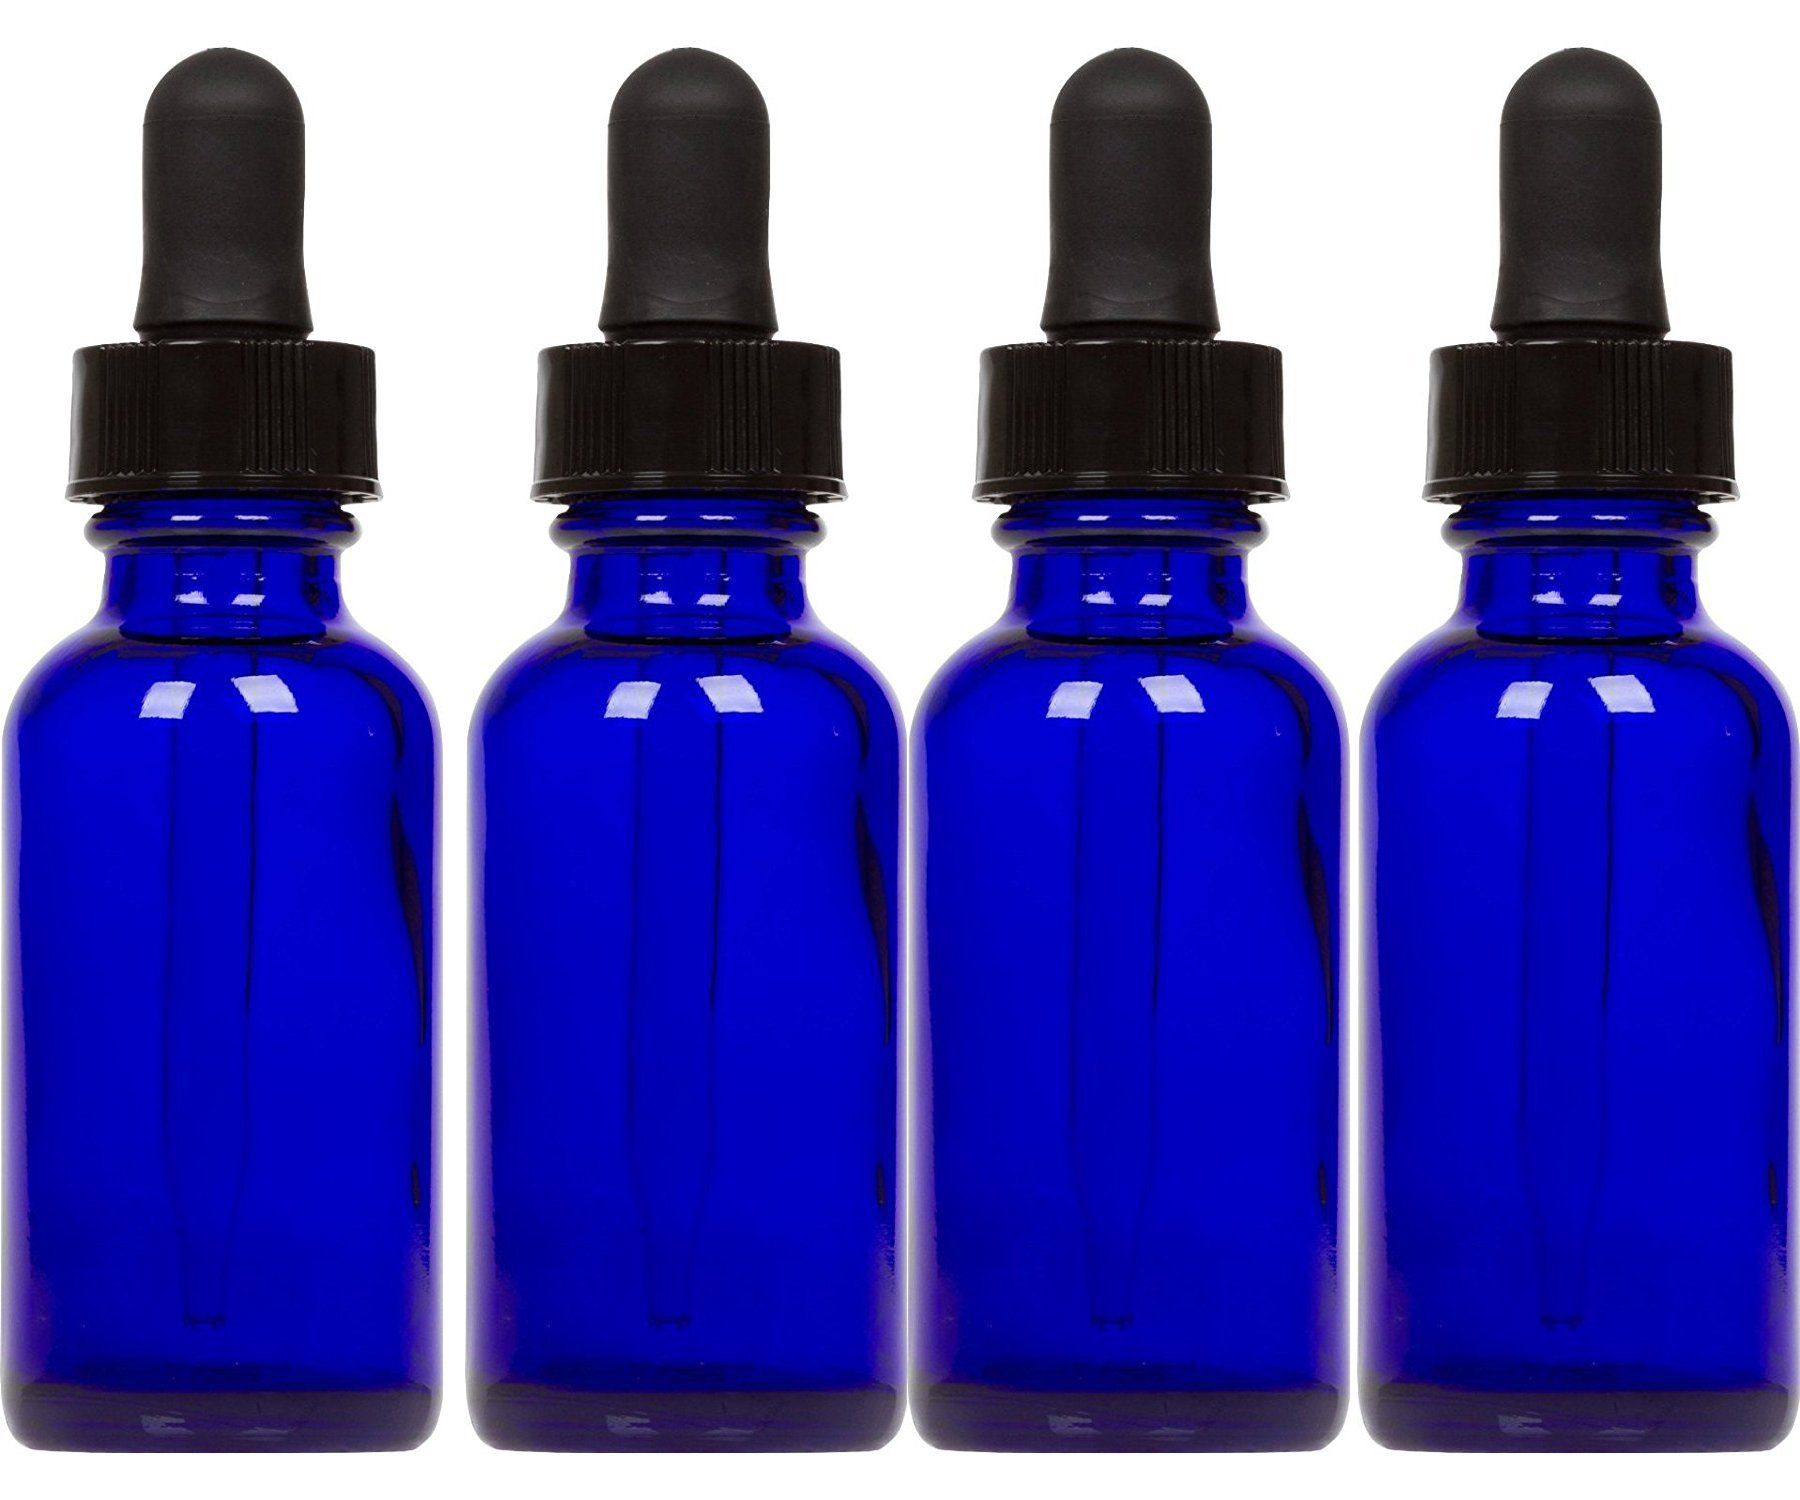 Cobalt Glass Bottles with Eye Droppers (2 oz, 4 pk) For Essential Oils, Colognes & Perfumes, Highest Quality, Blank Labels Included